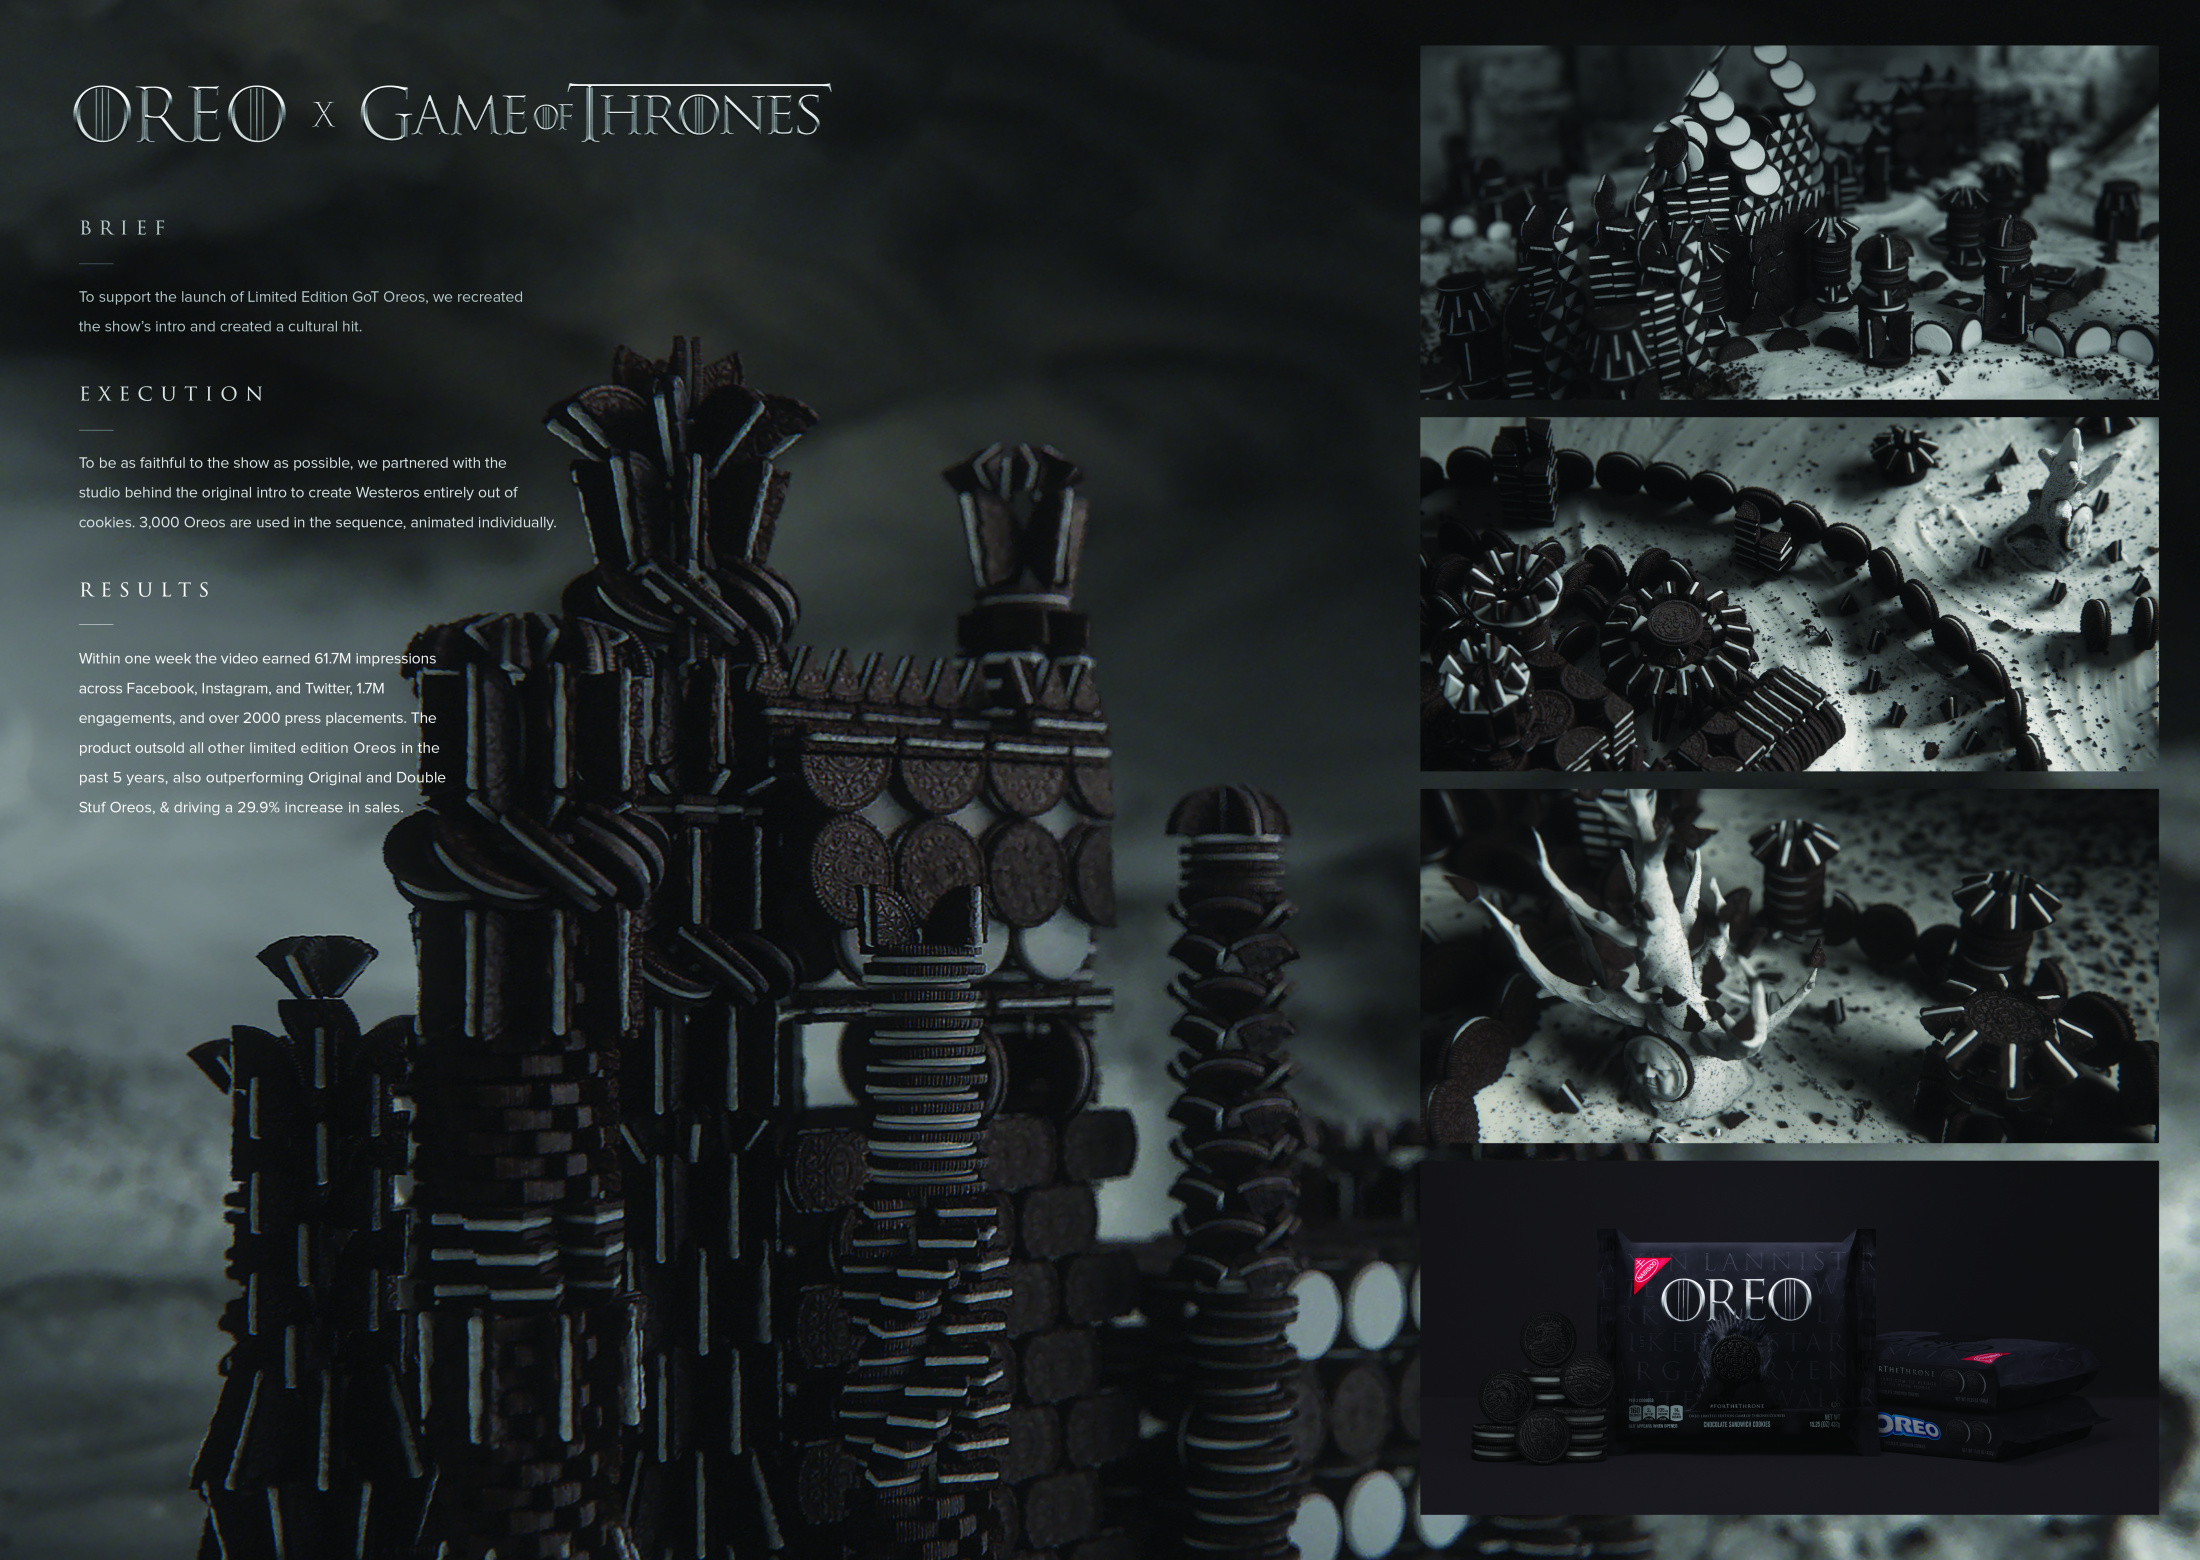 Image Media for Oreo x Game of Thrones